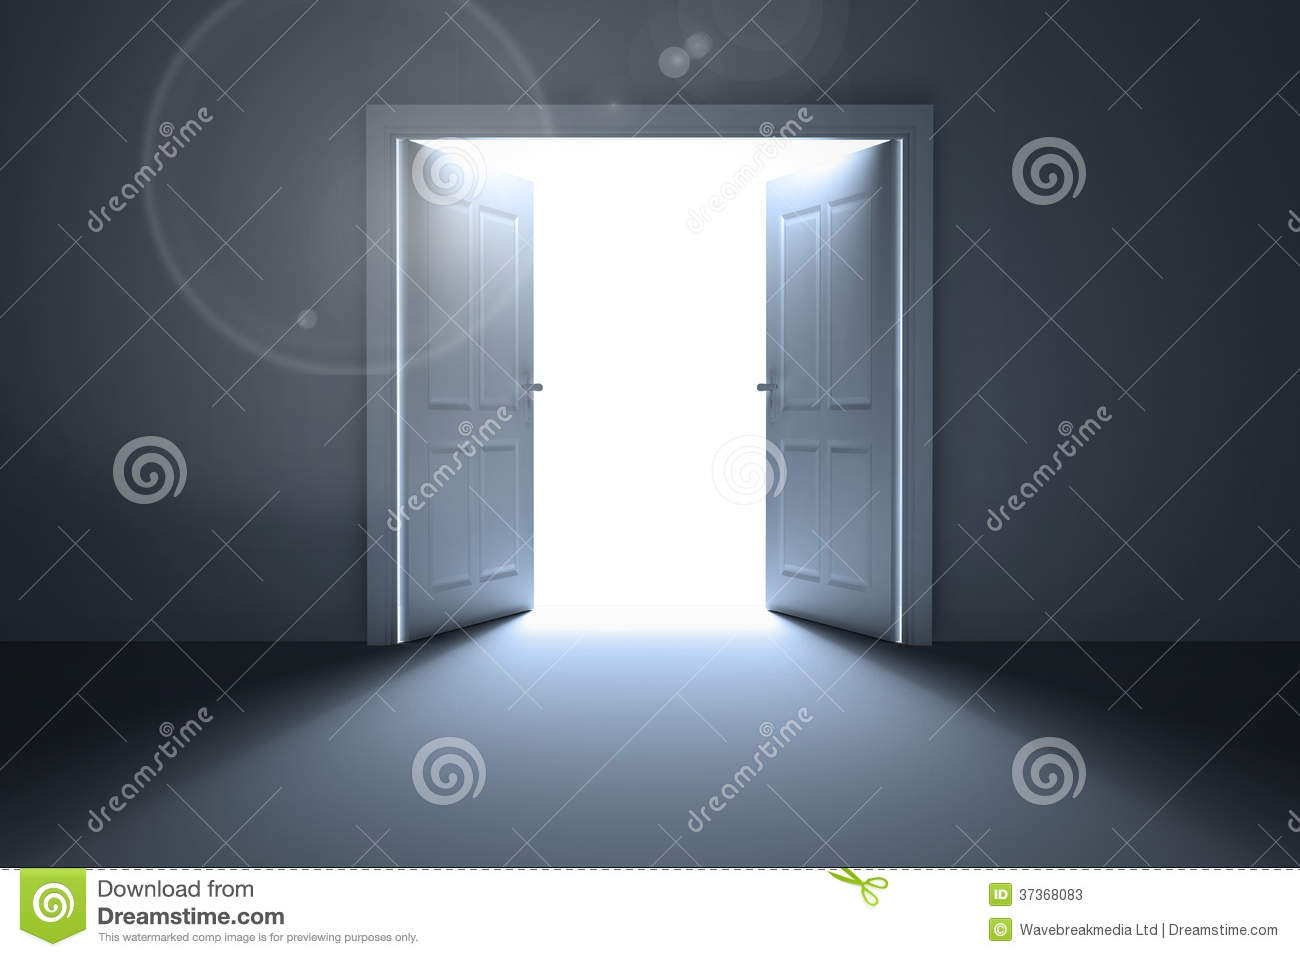 Doors opening revealing light stock photos image 37368083 for Door with light